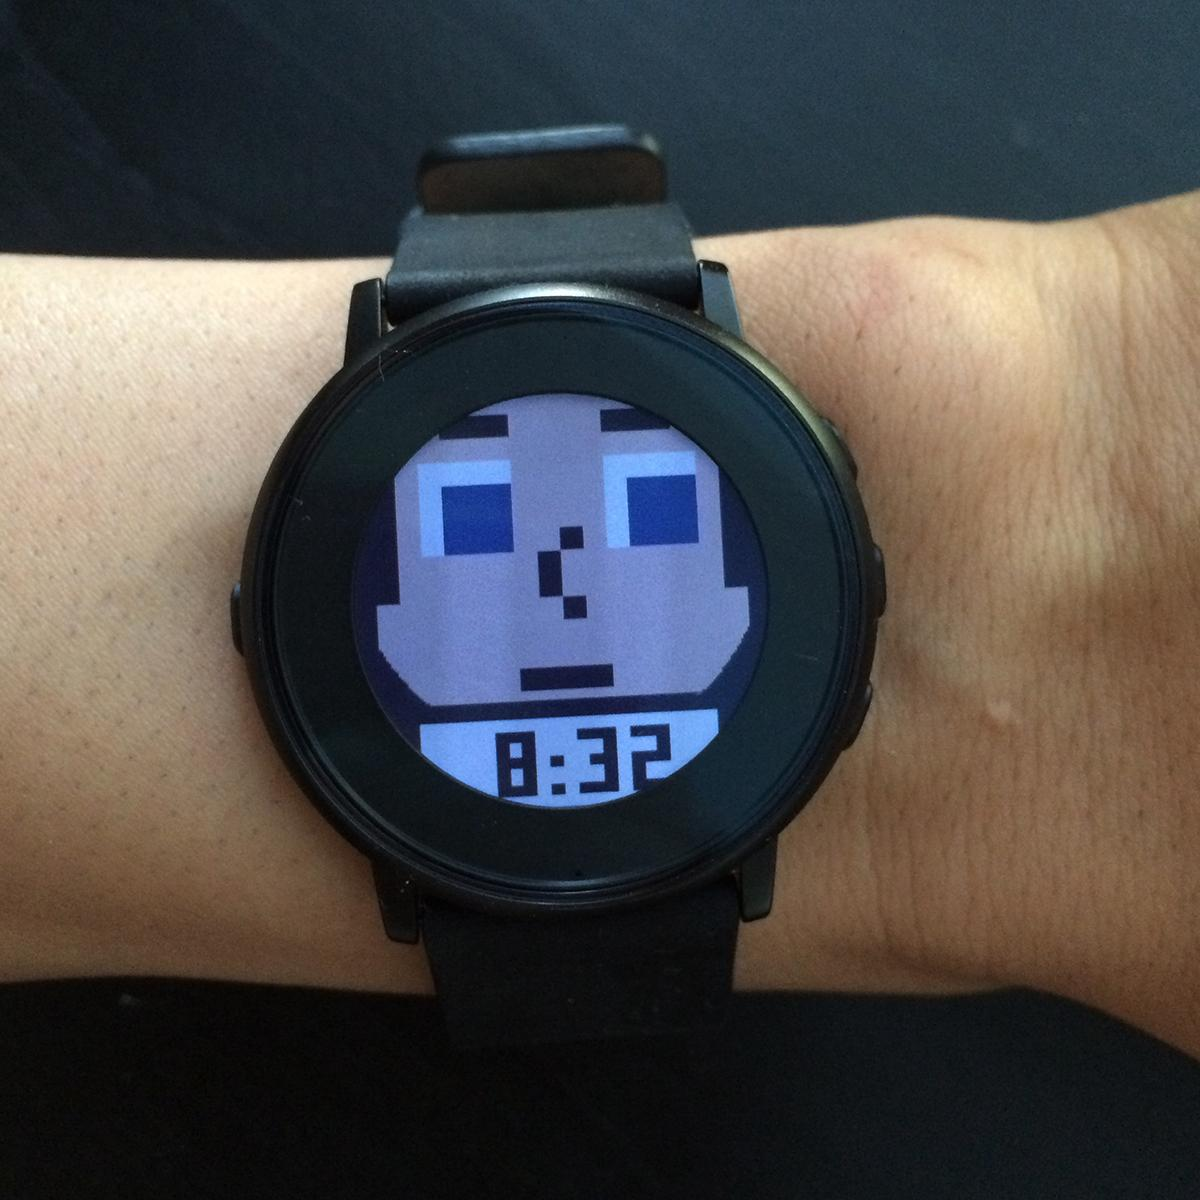 Tinyheads Pebble watch face